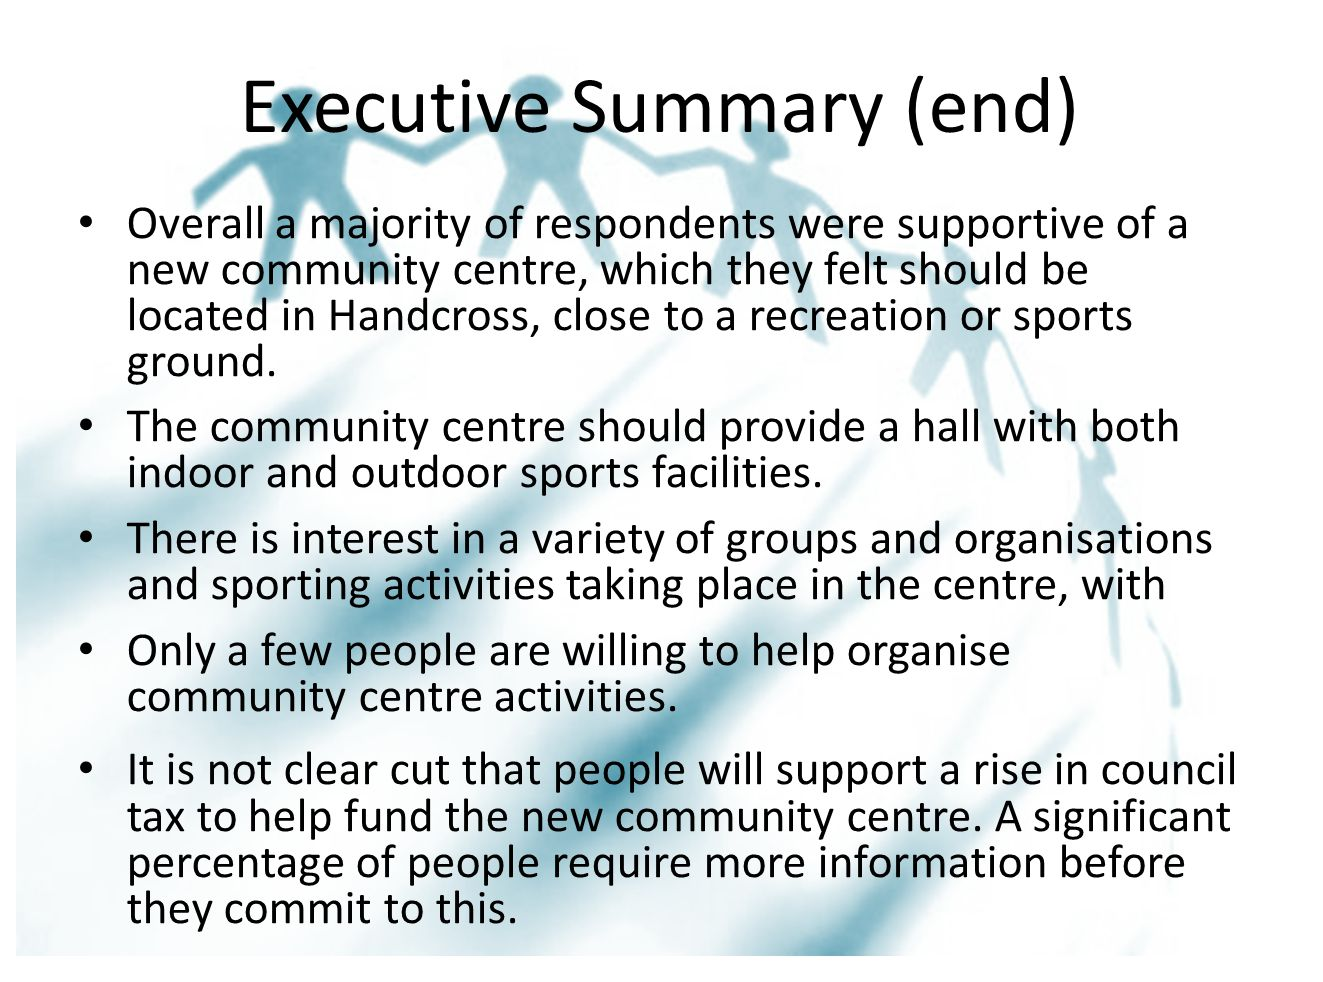 Executive Summary (end) Overall a majority of respondents were supportive of a new community centre, which they felt should be located in Handcross, close to a recreation or sports ground.